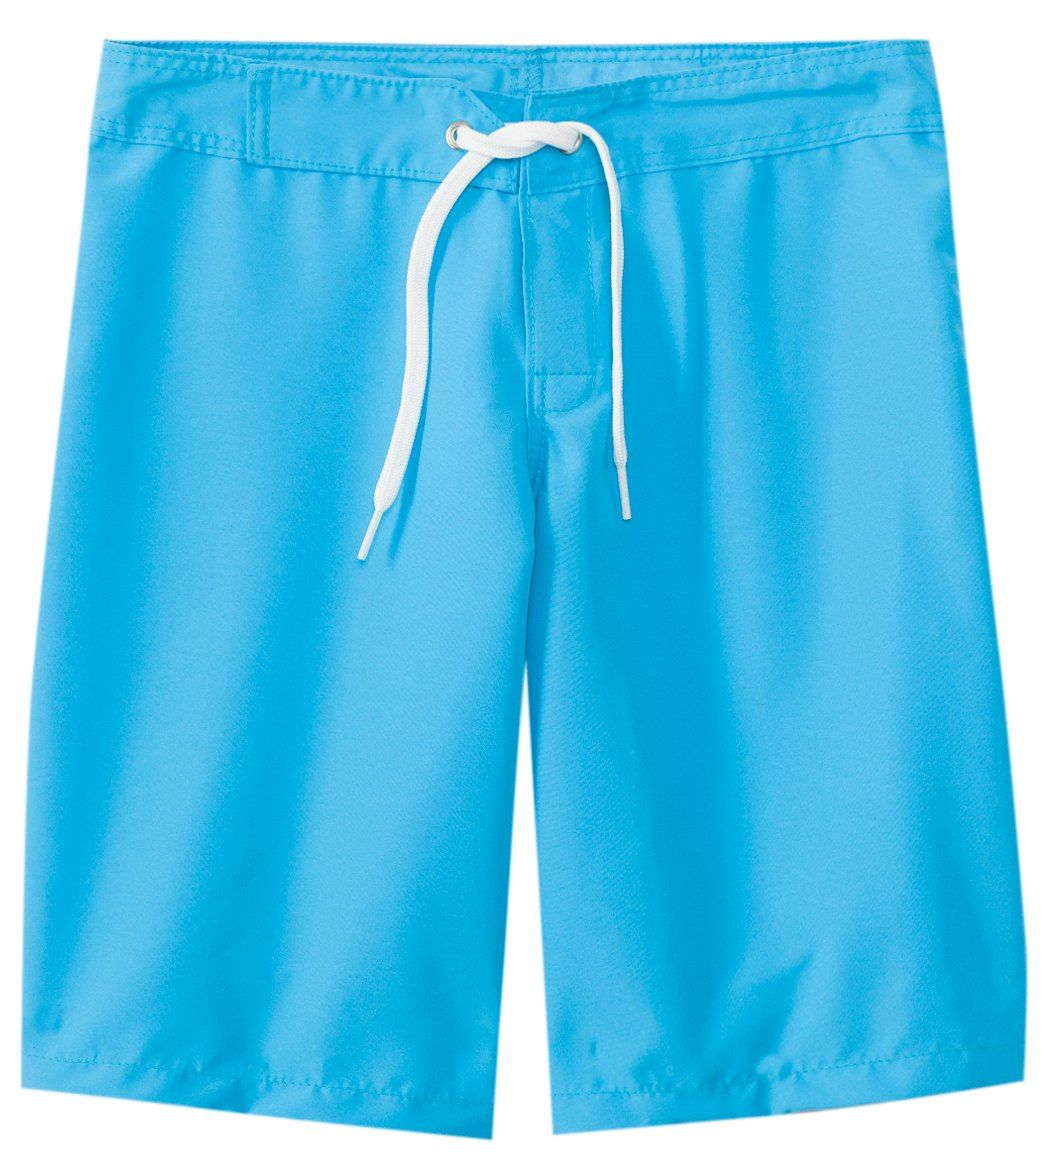 26917c79c8 Awesome solid color board shorts! I love the long inseam! Swim Outlet sizes  7-14